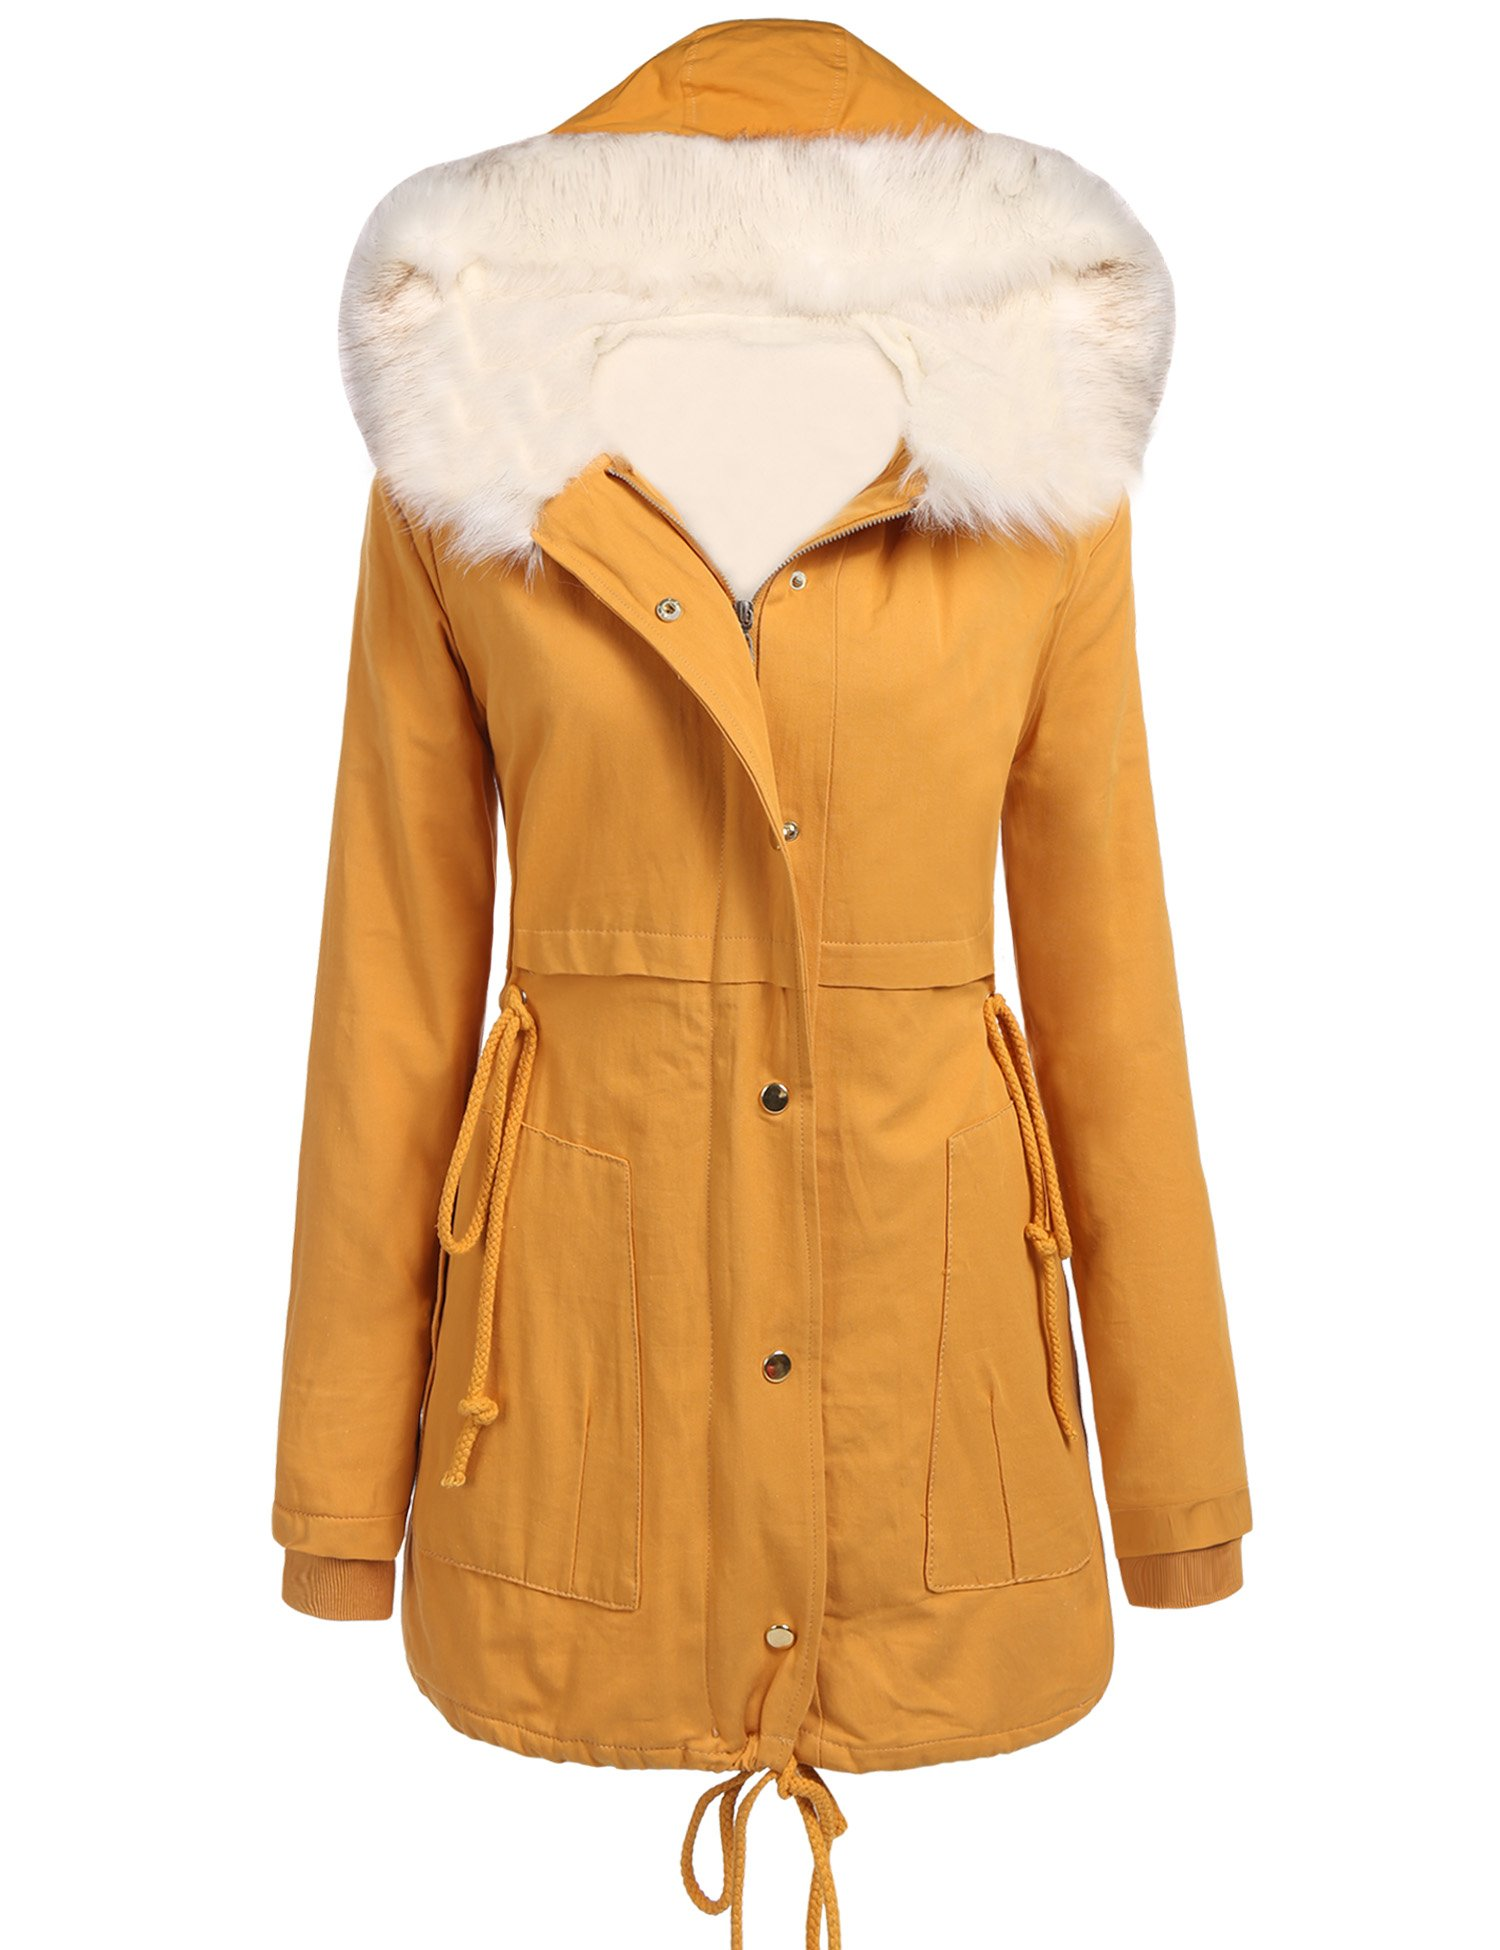 Beyove Womens Hooded Warm Coats Parkas With Faux Fur Jackets, Yellow, XX-Large